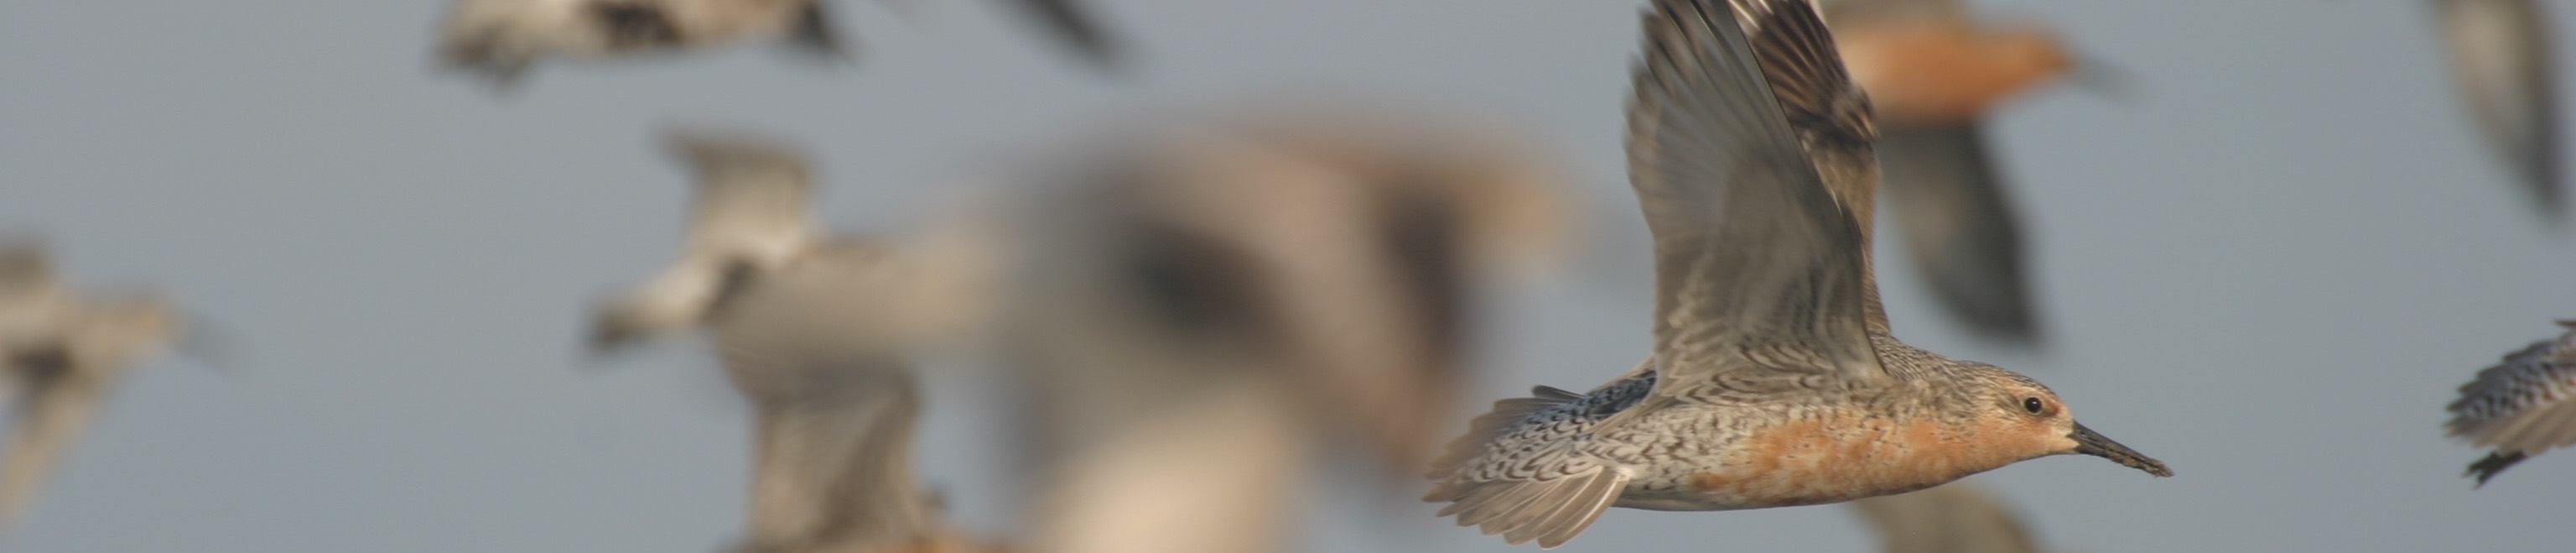 The southeastern U.S. supports important stop over and overwintering areas for Red Knots.